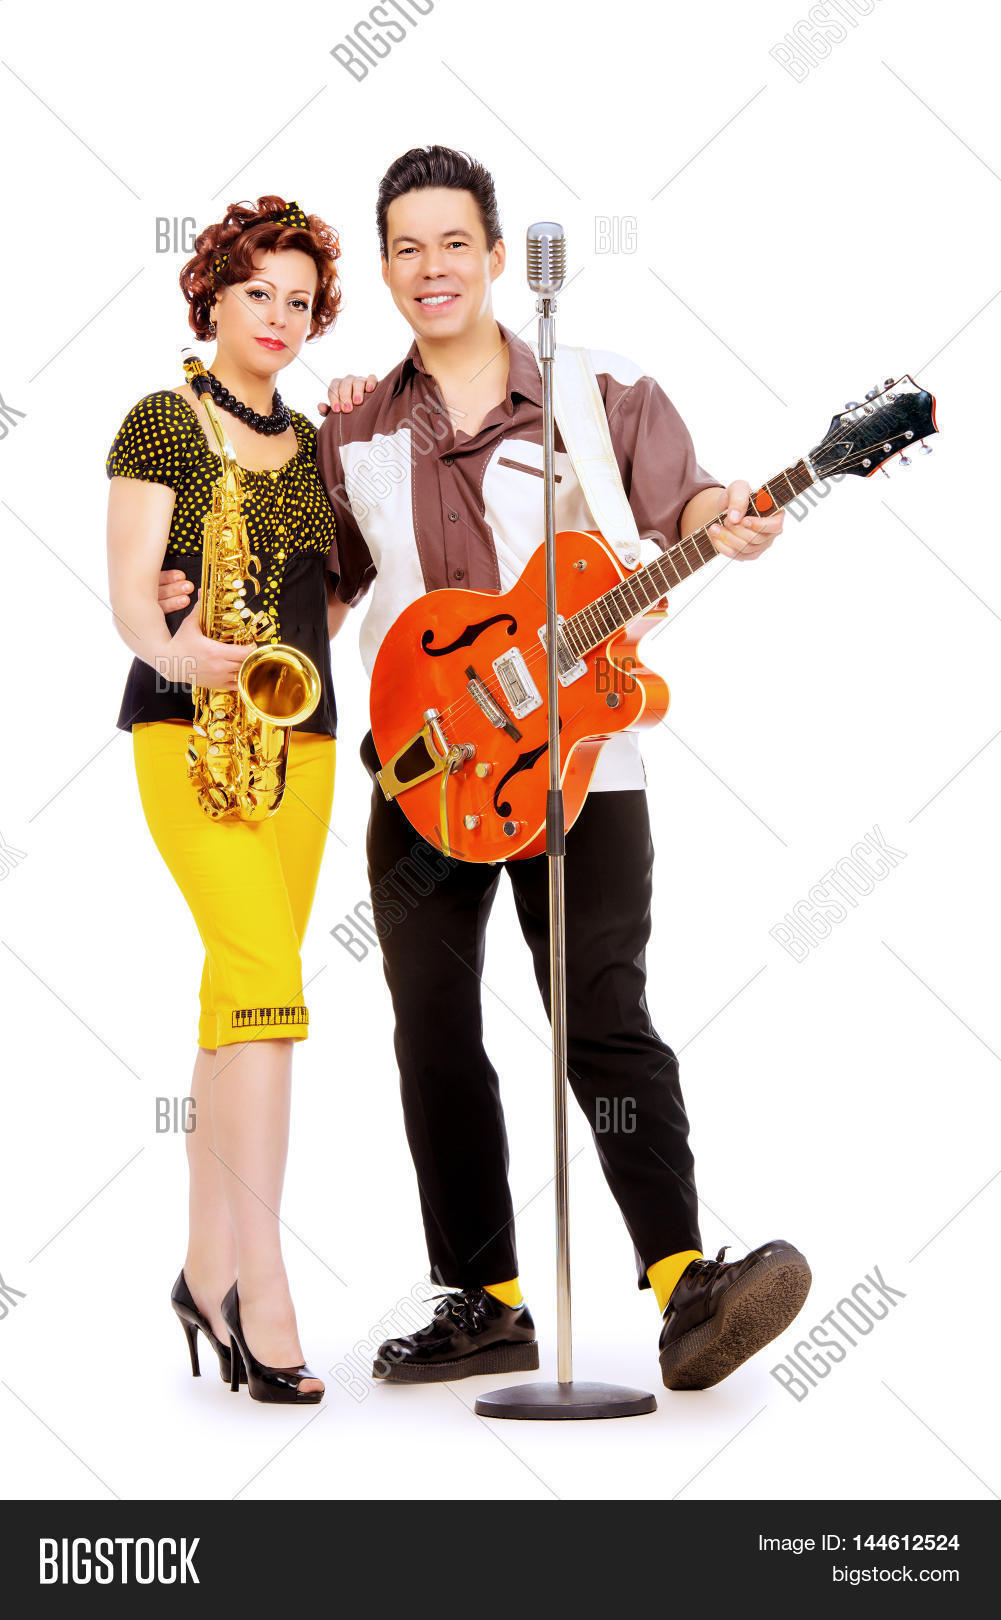 Guitarist Saxophonist Image & Photo (Free Trial) | Bigstock